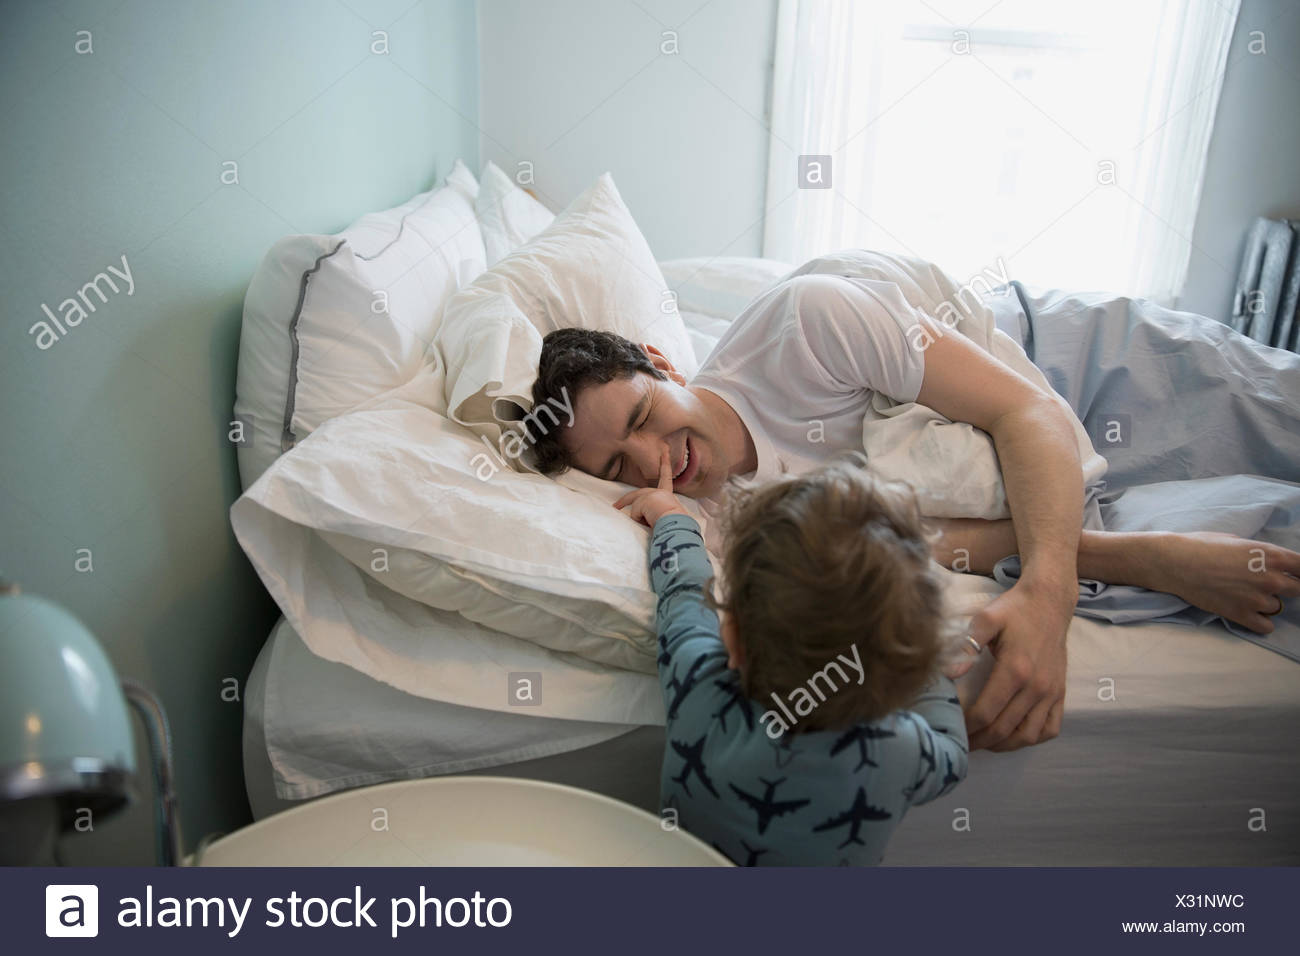 Son waking father by pushing nose - Stock Image